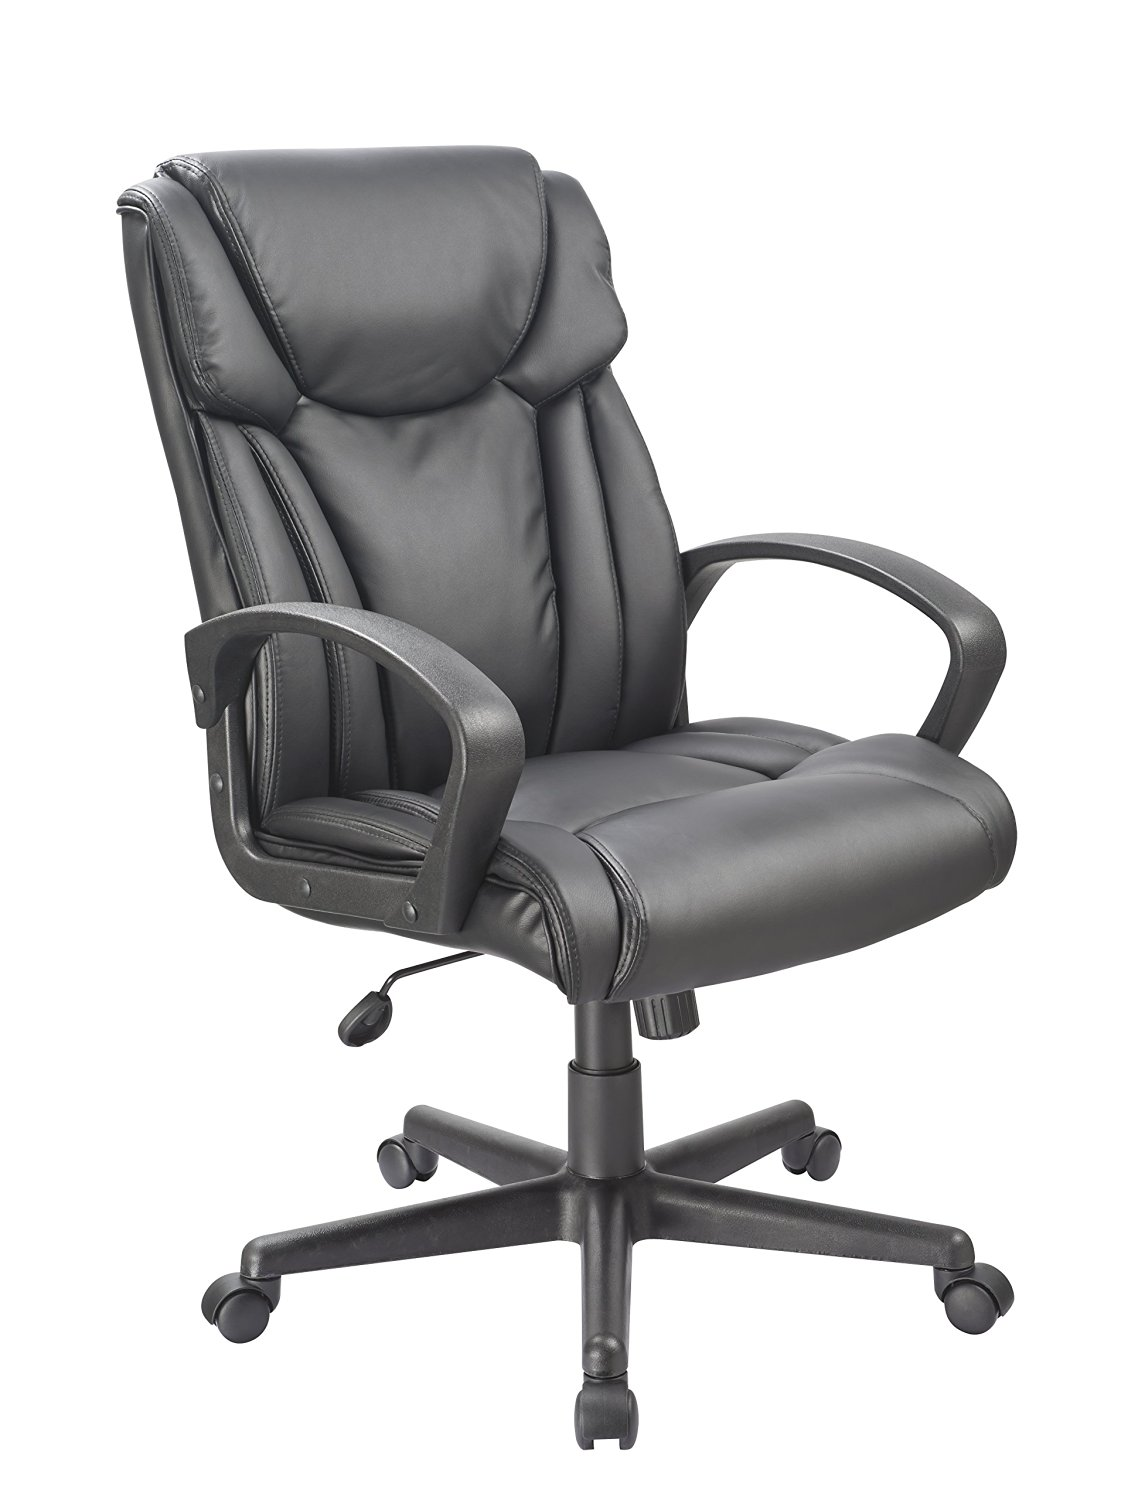 cheap comfy computer chair find comfy computer chair deals on line